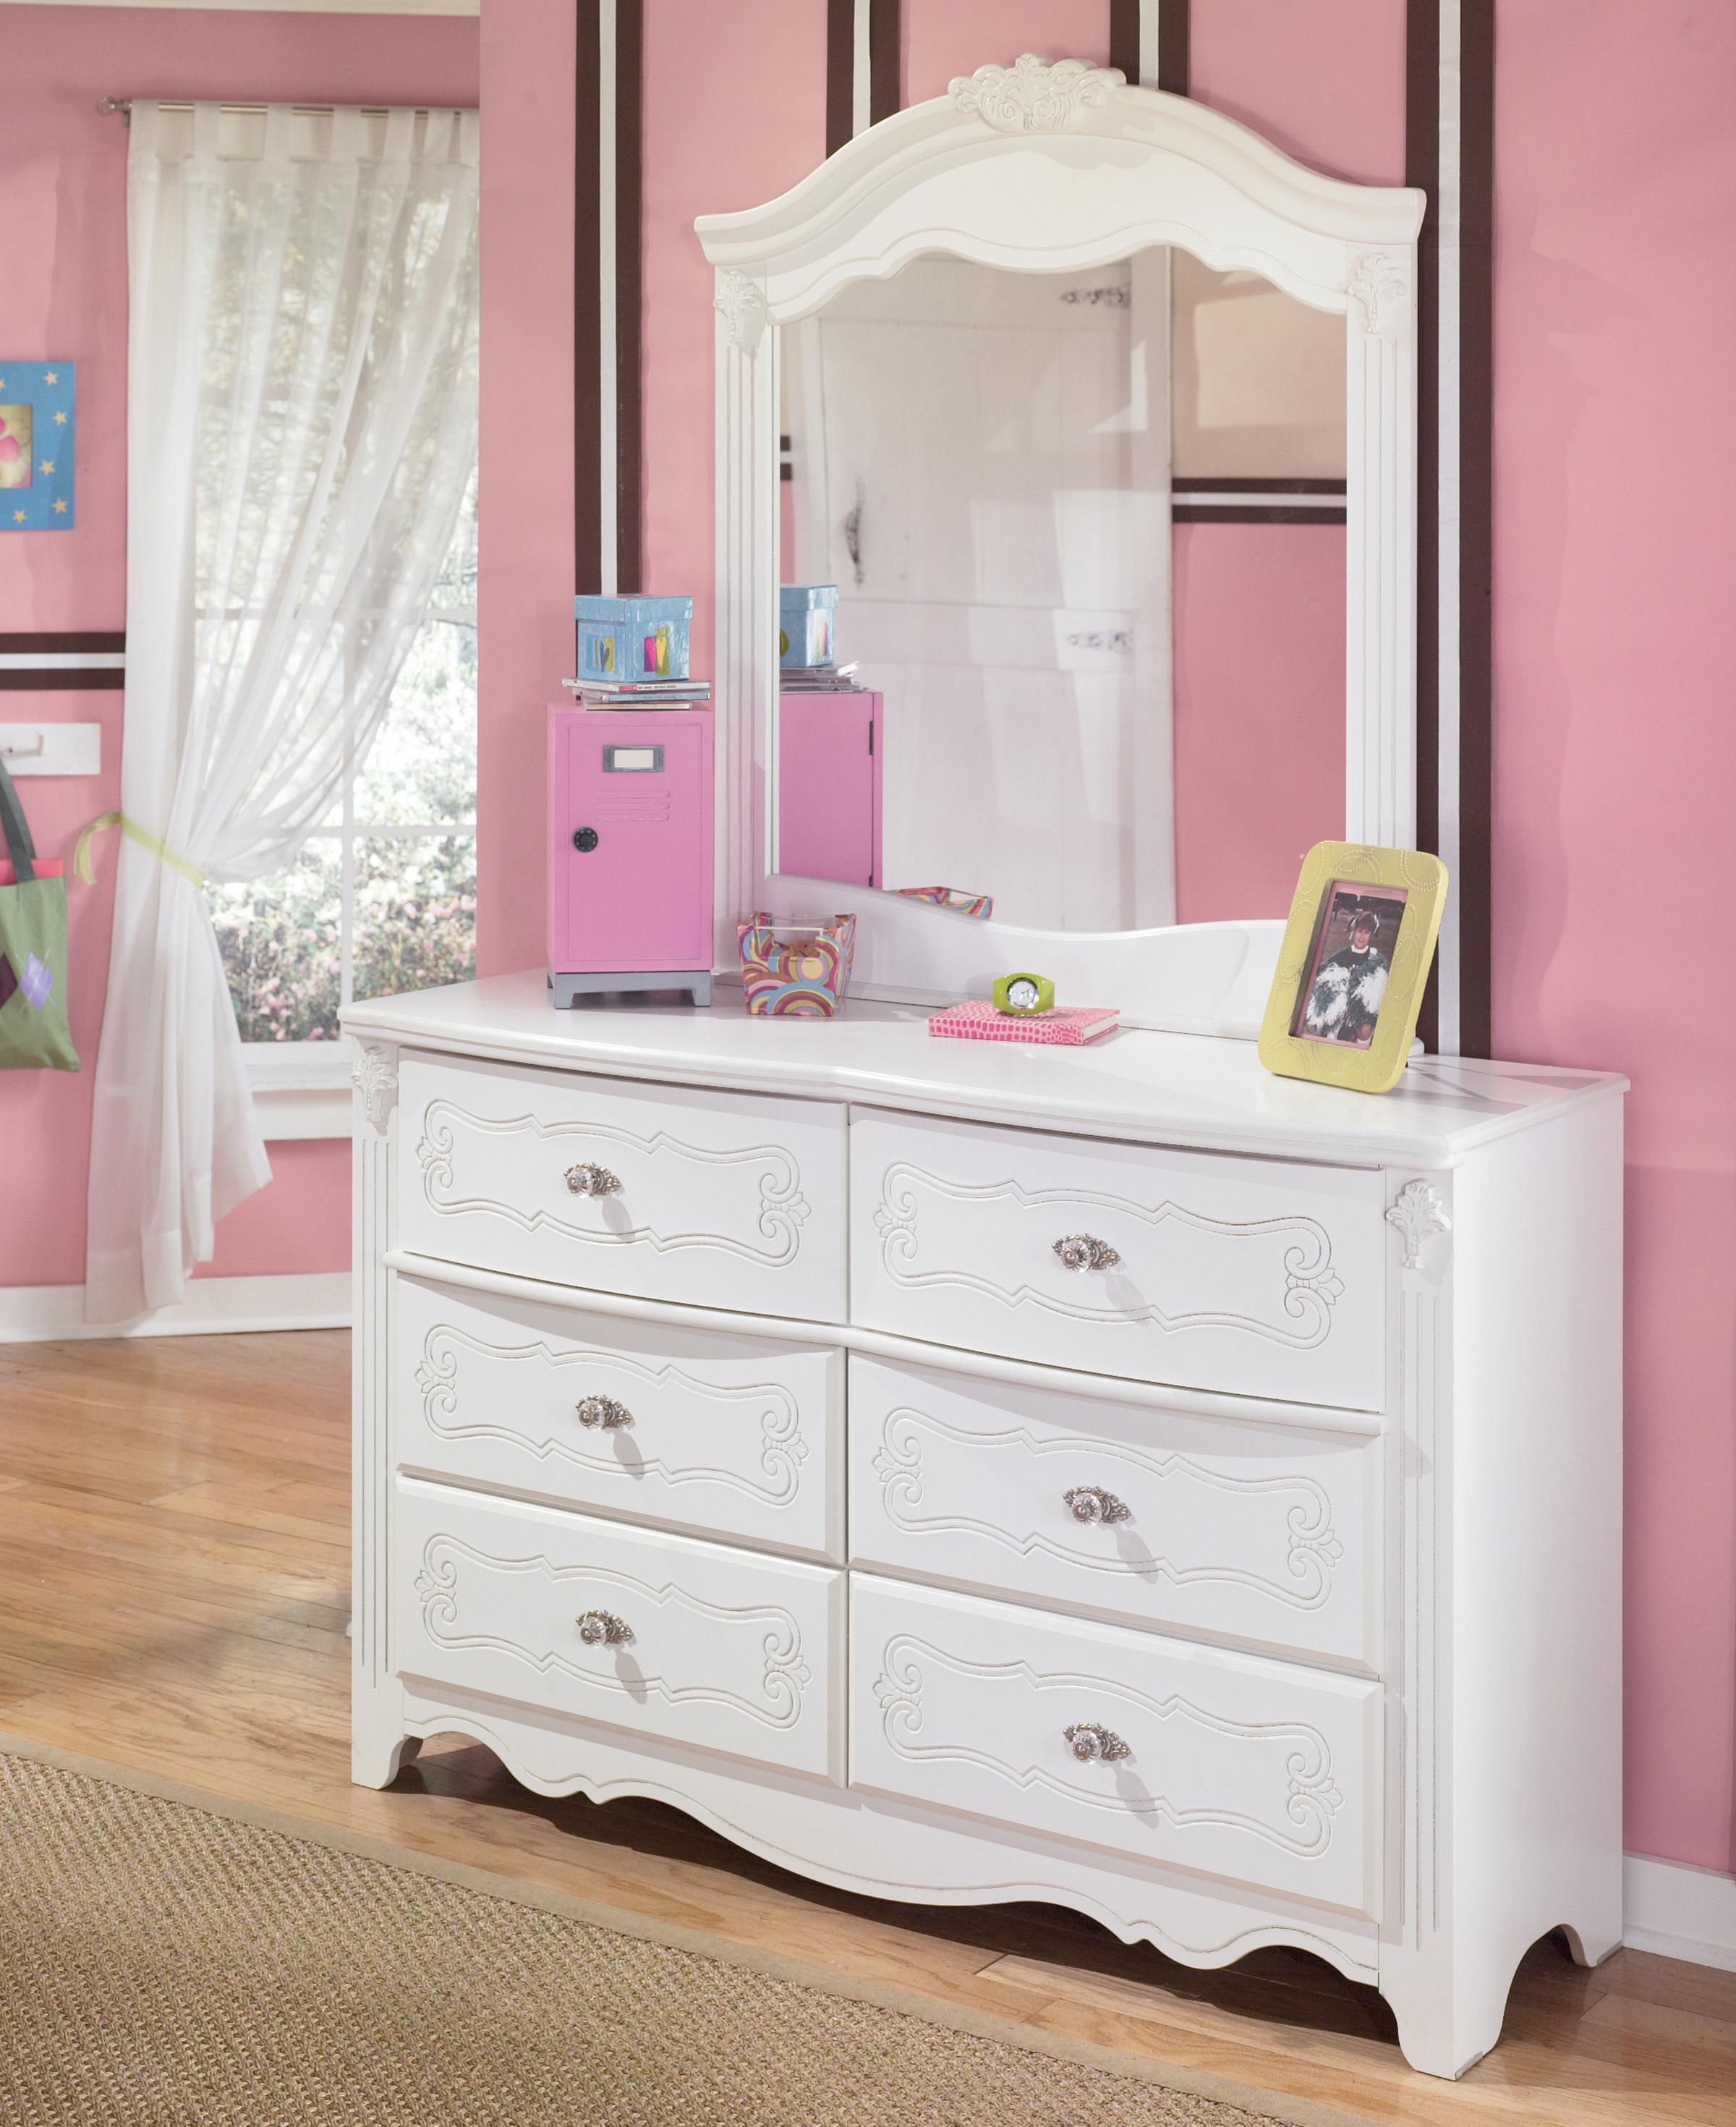 Signature Design by Ashley Exquisite Dresser and Mirror - Item Number: B188-21+26